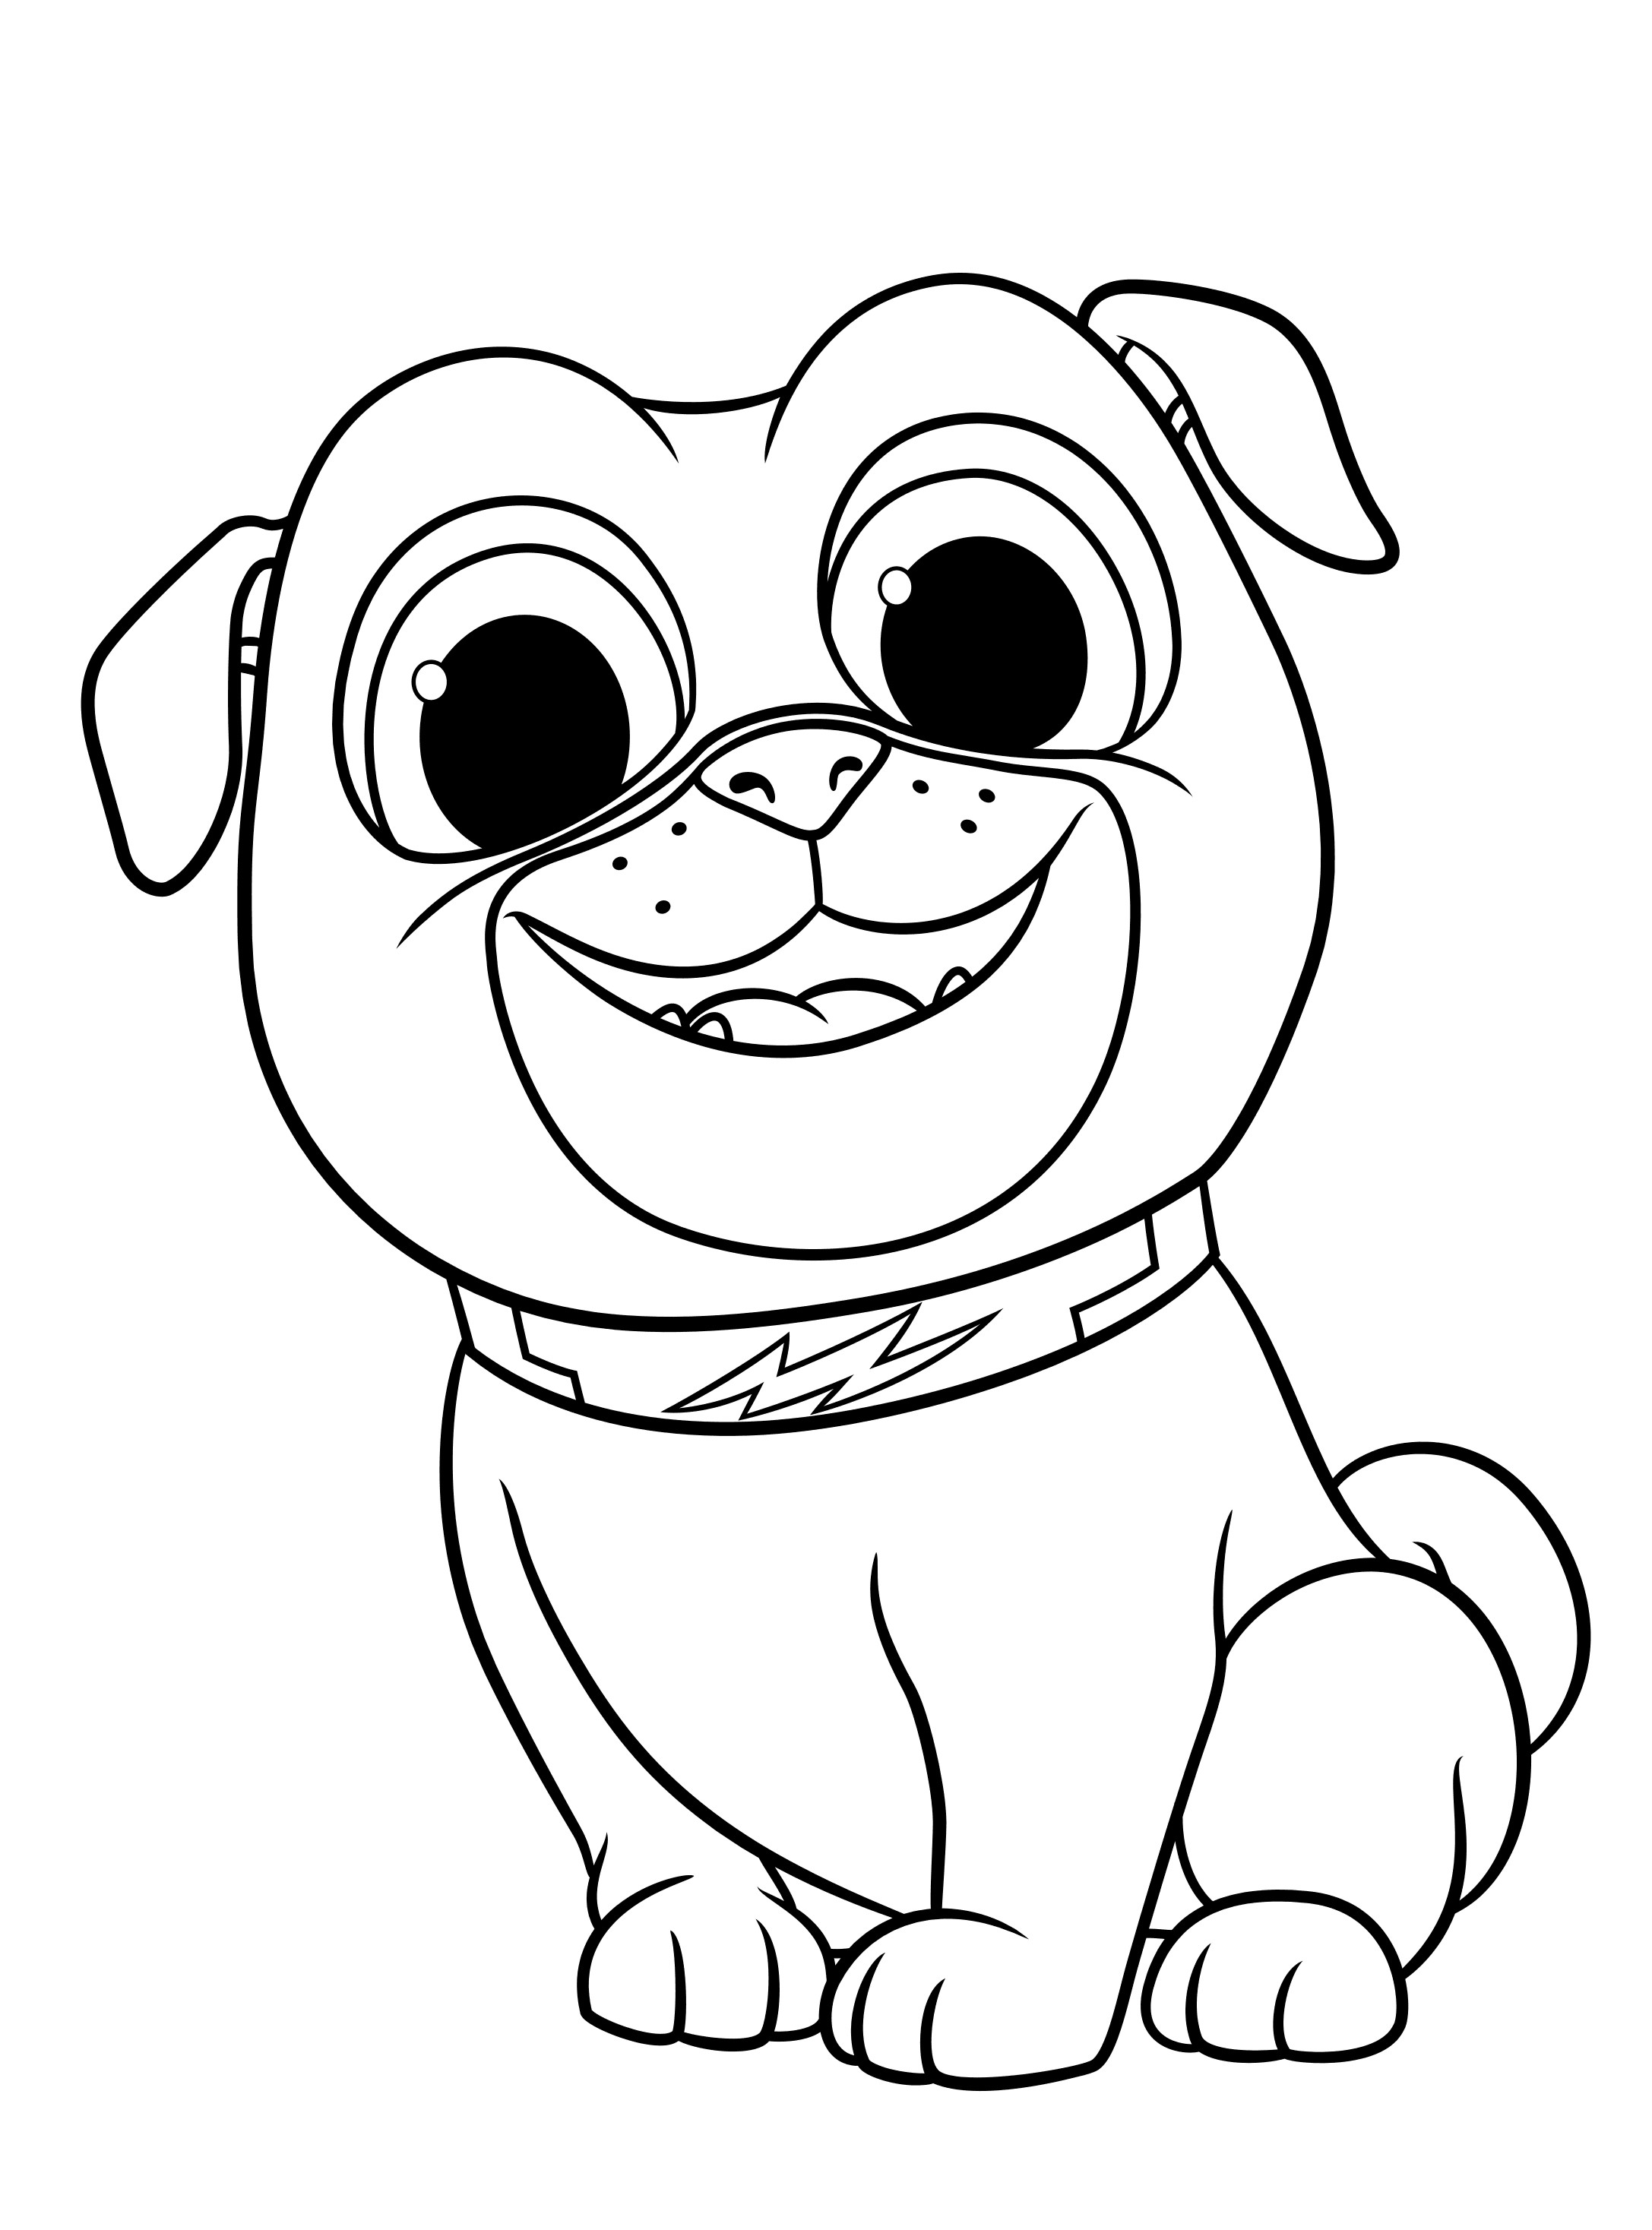 dog color page small dog coloring pages coloring home color dog page